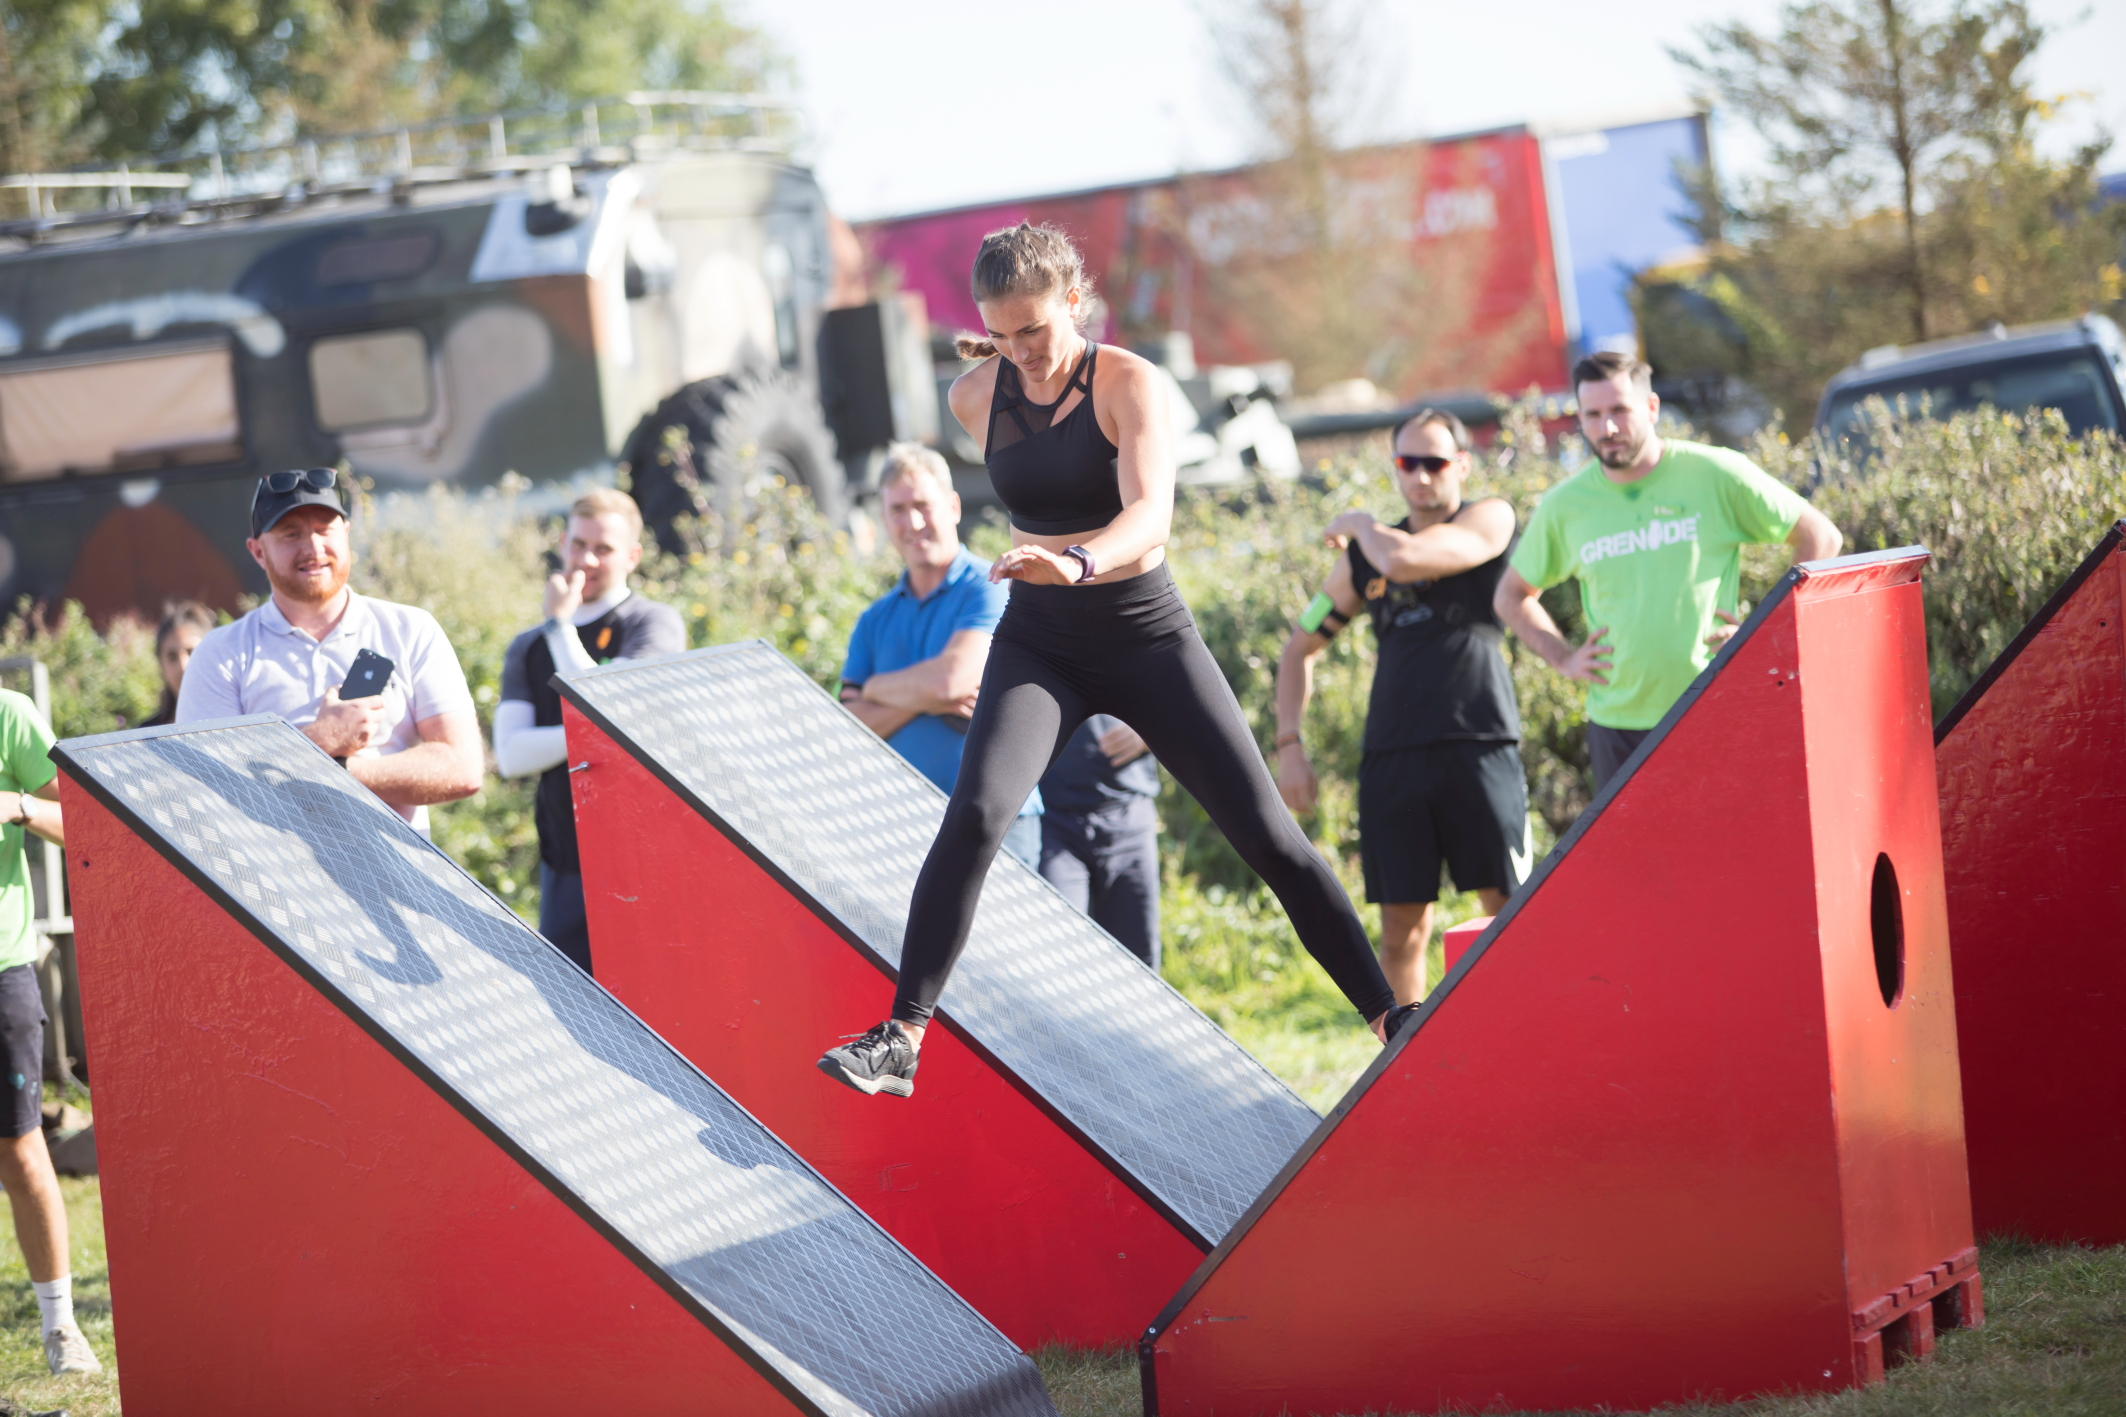 A fit woman jumps sideways between giant, angled steps as part of an obstacle course